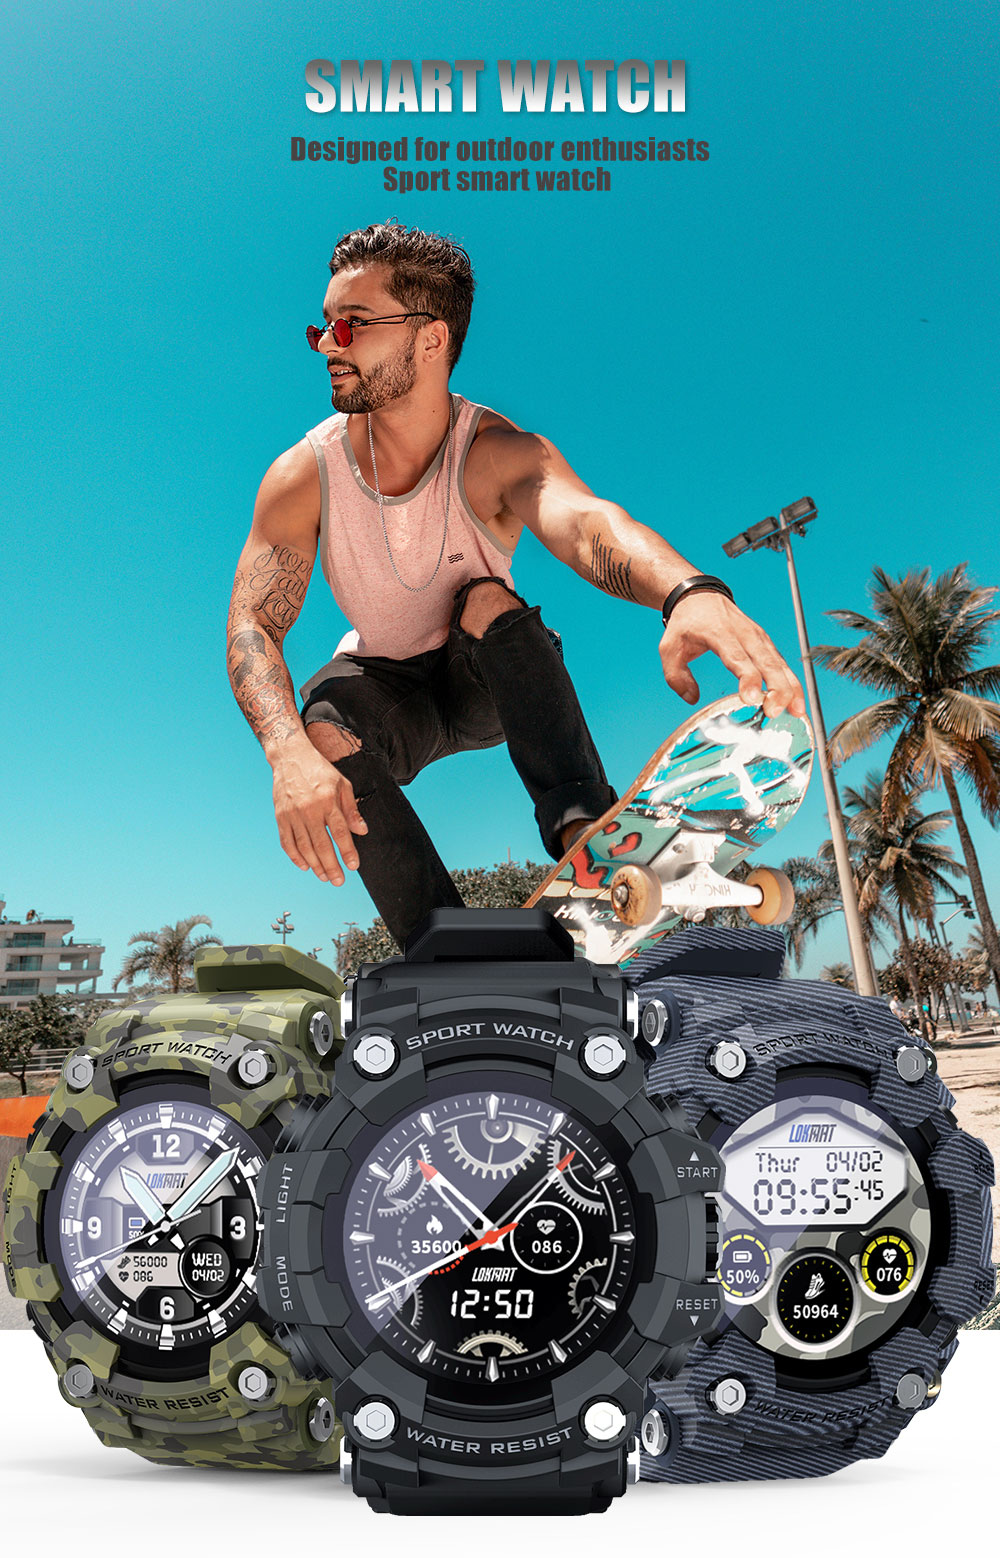 H0267302c049940b3acdbf46489e1a4b1a LOKMAT ATTACK Full Touch Screen Fitness Tracker Smart Watch Men Heart Rate Monitor Blood Pressure Smartwatch For Android iOS